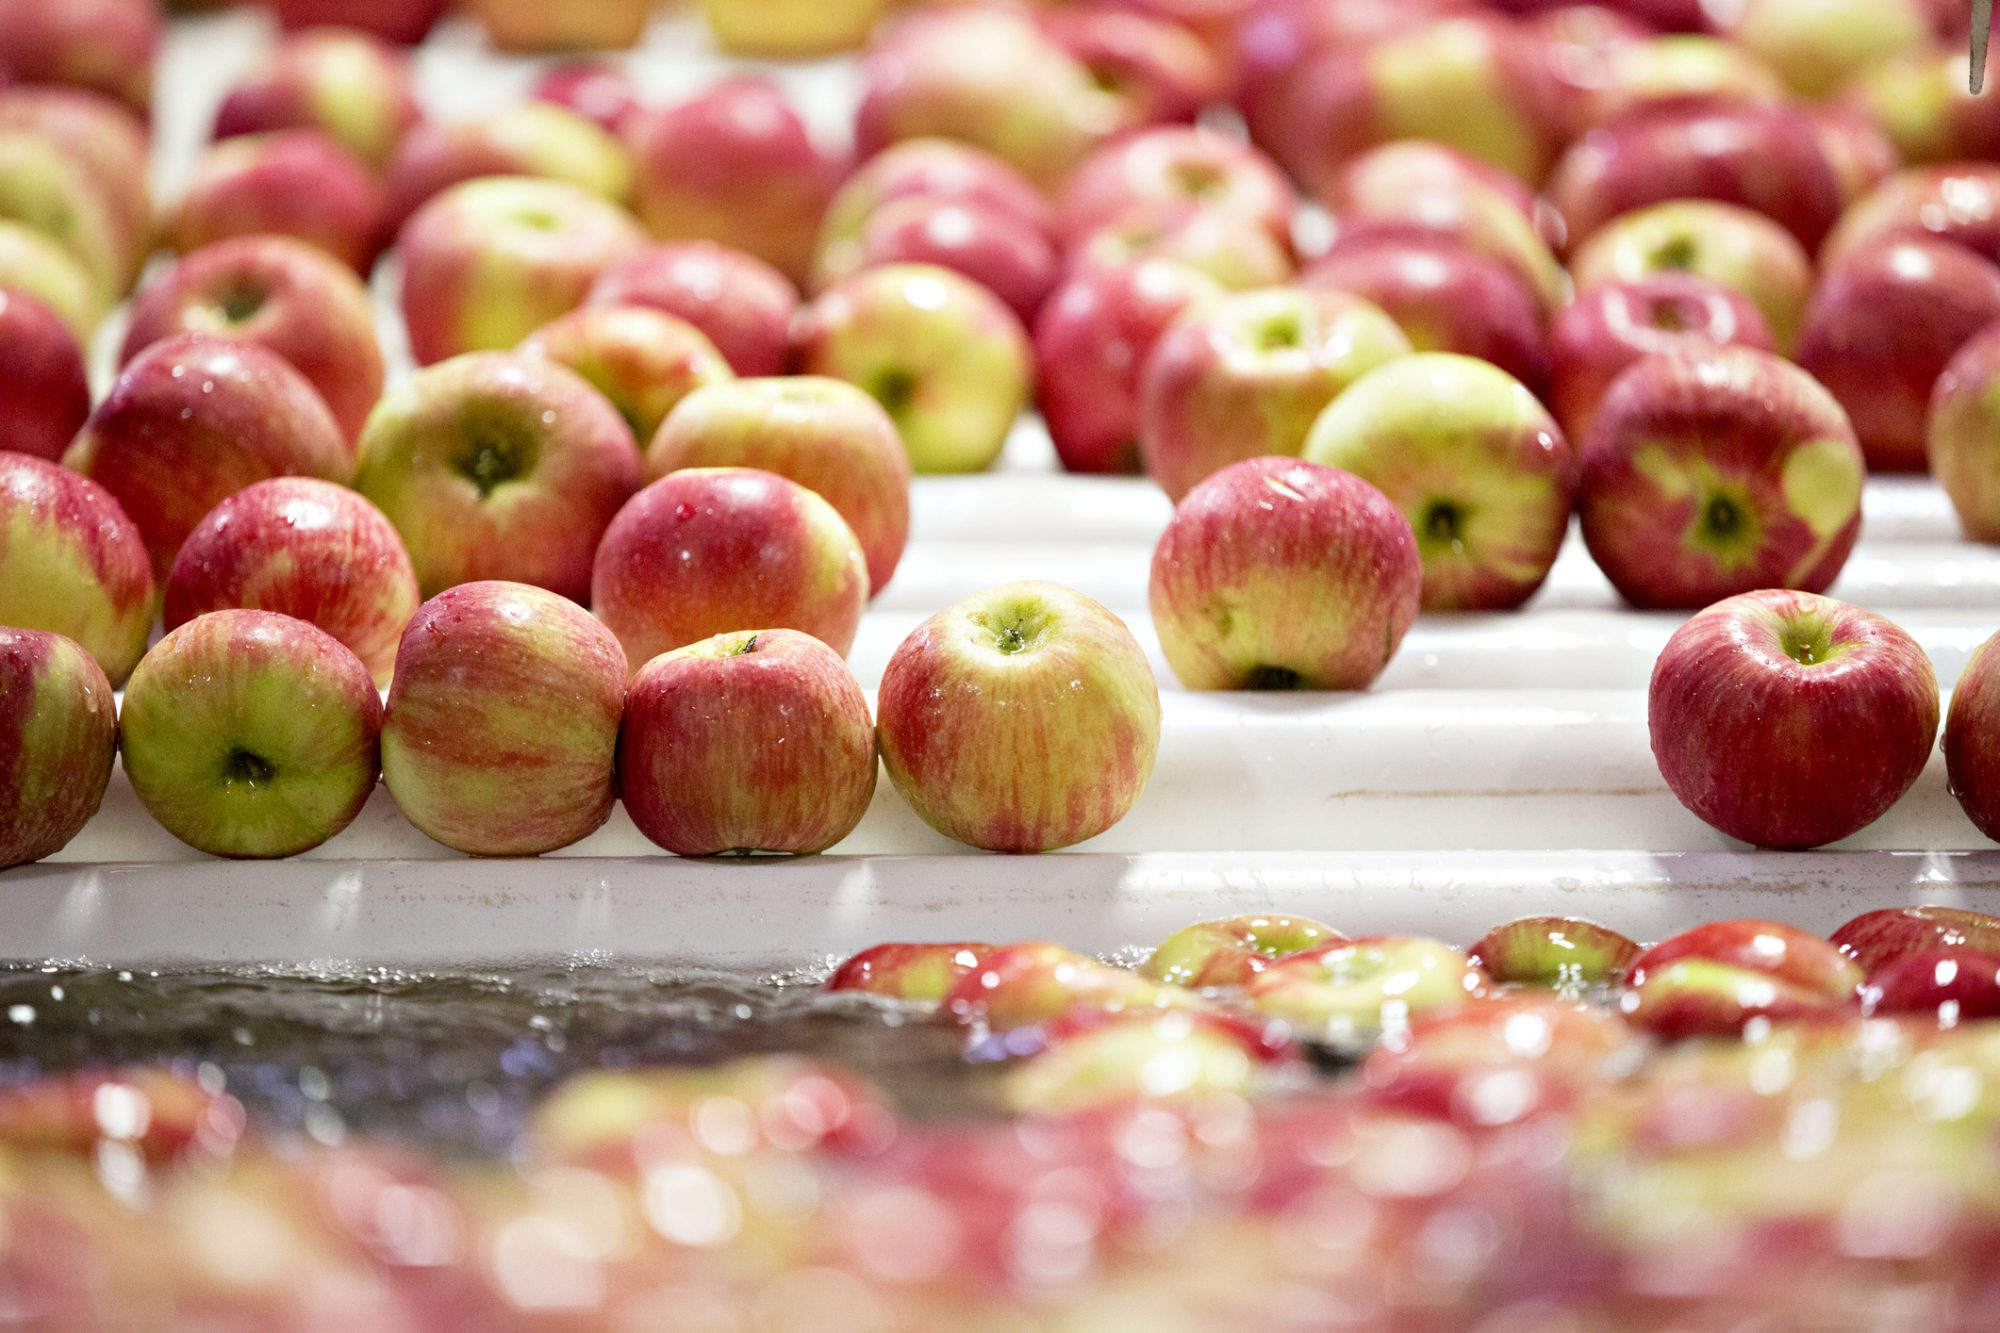 Honeycrisp apples moves through a wash machine at an orchard in Michigan, U.S. Photographer: Daniel Acker/Bloomberg